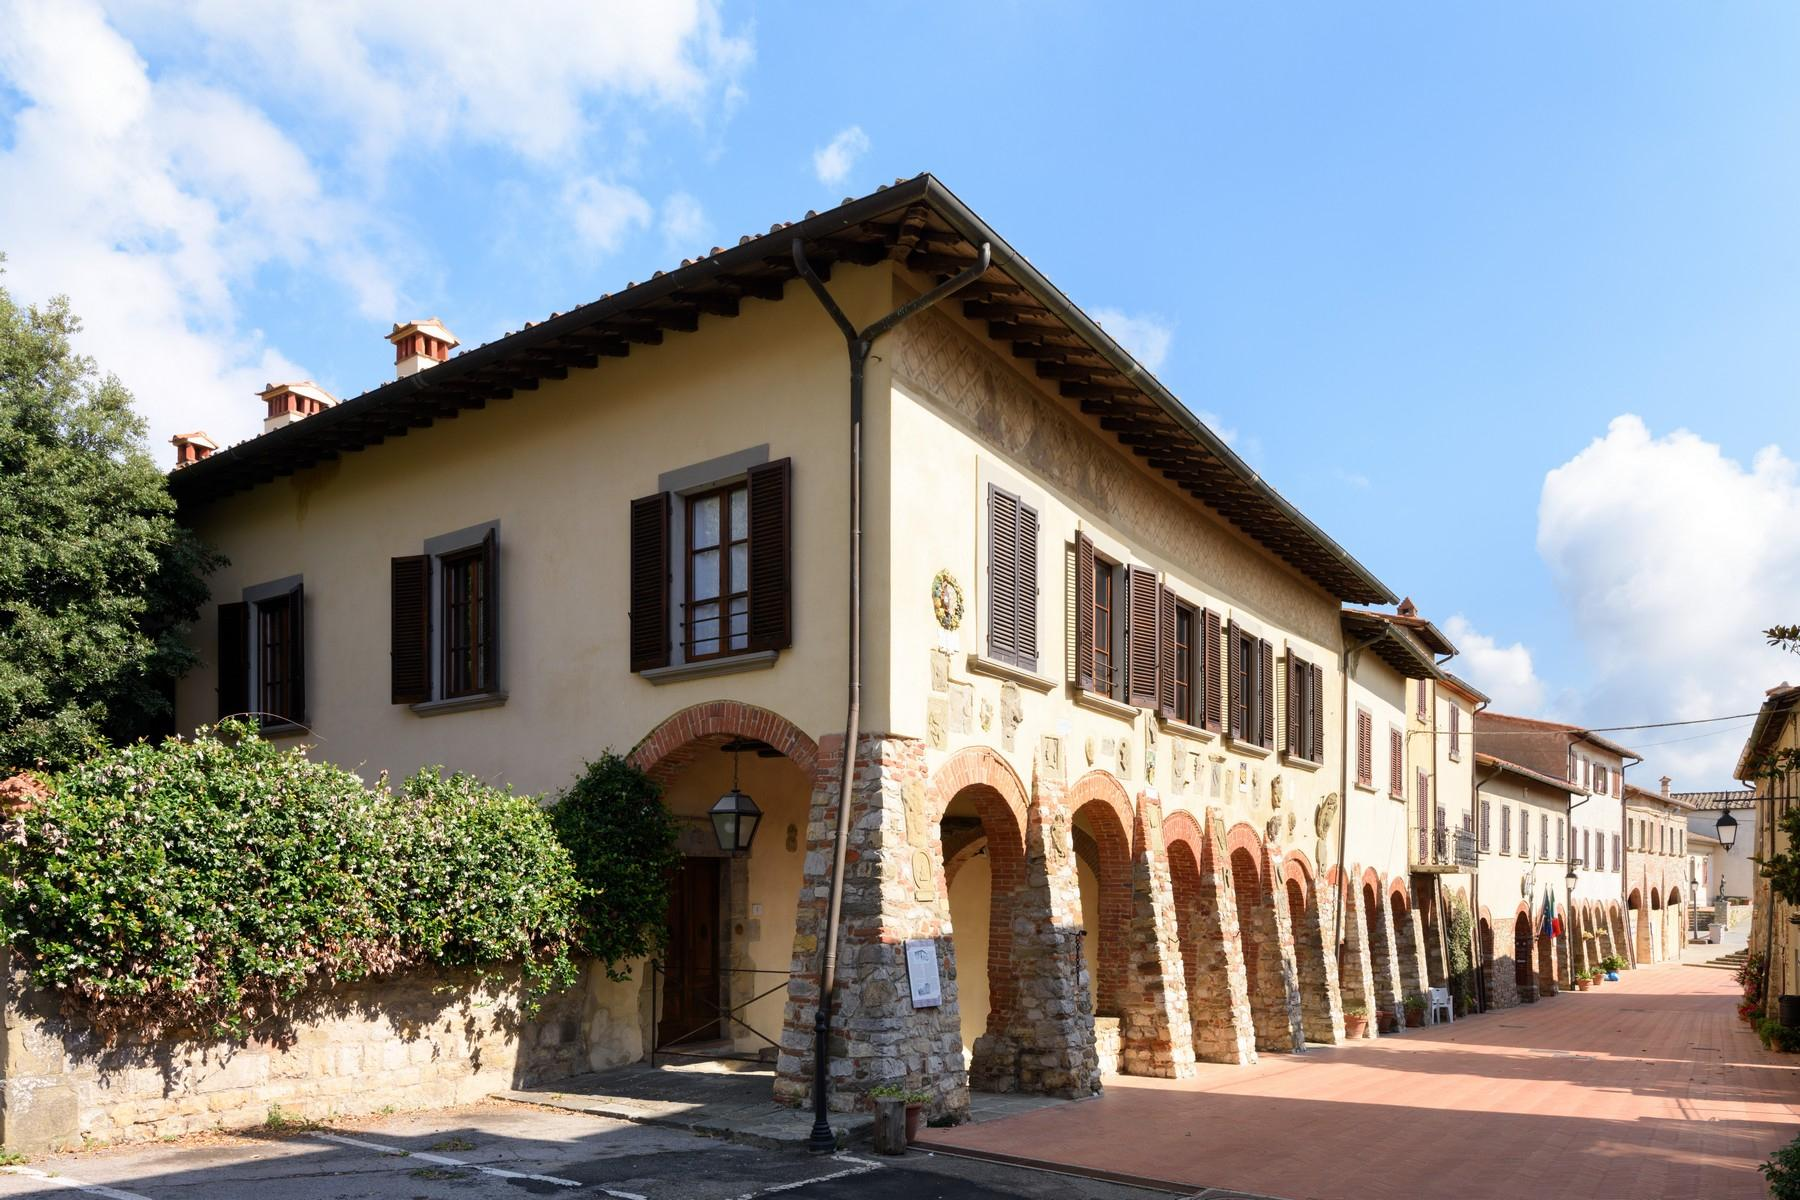 Historical palace of the 10th century in the heart of the Val di Chiana - 1